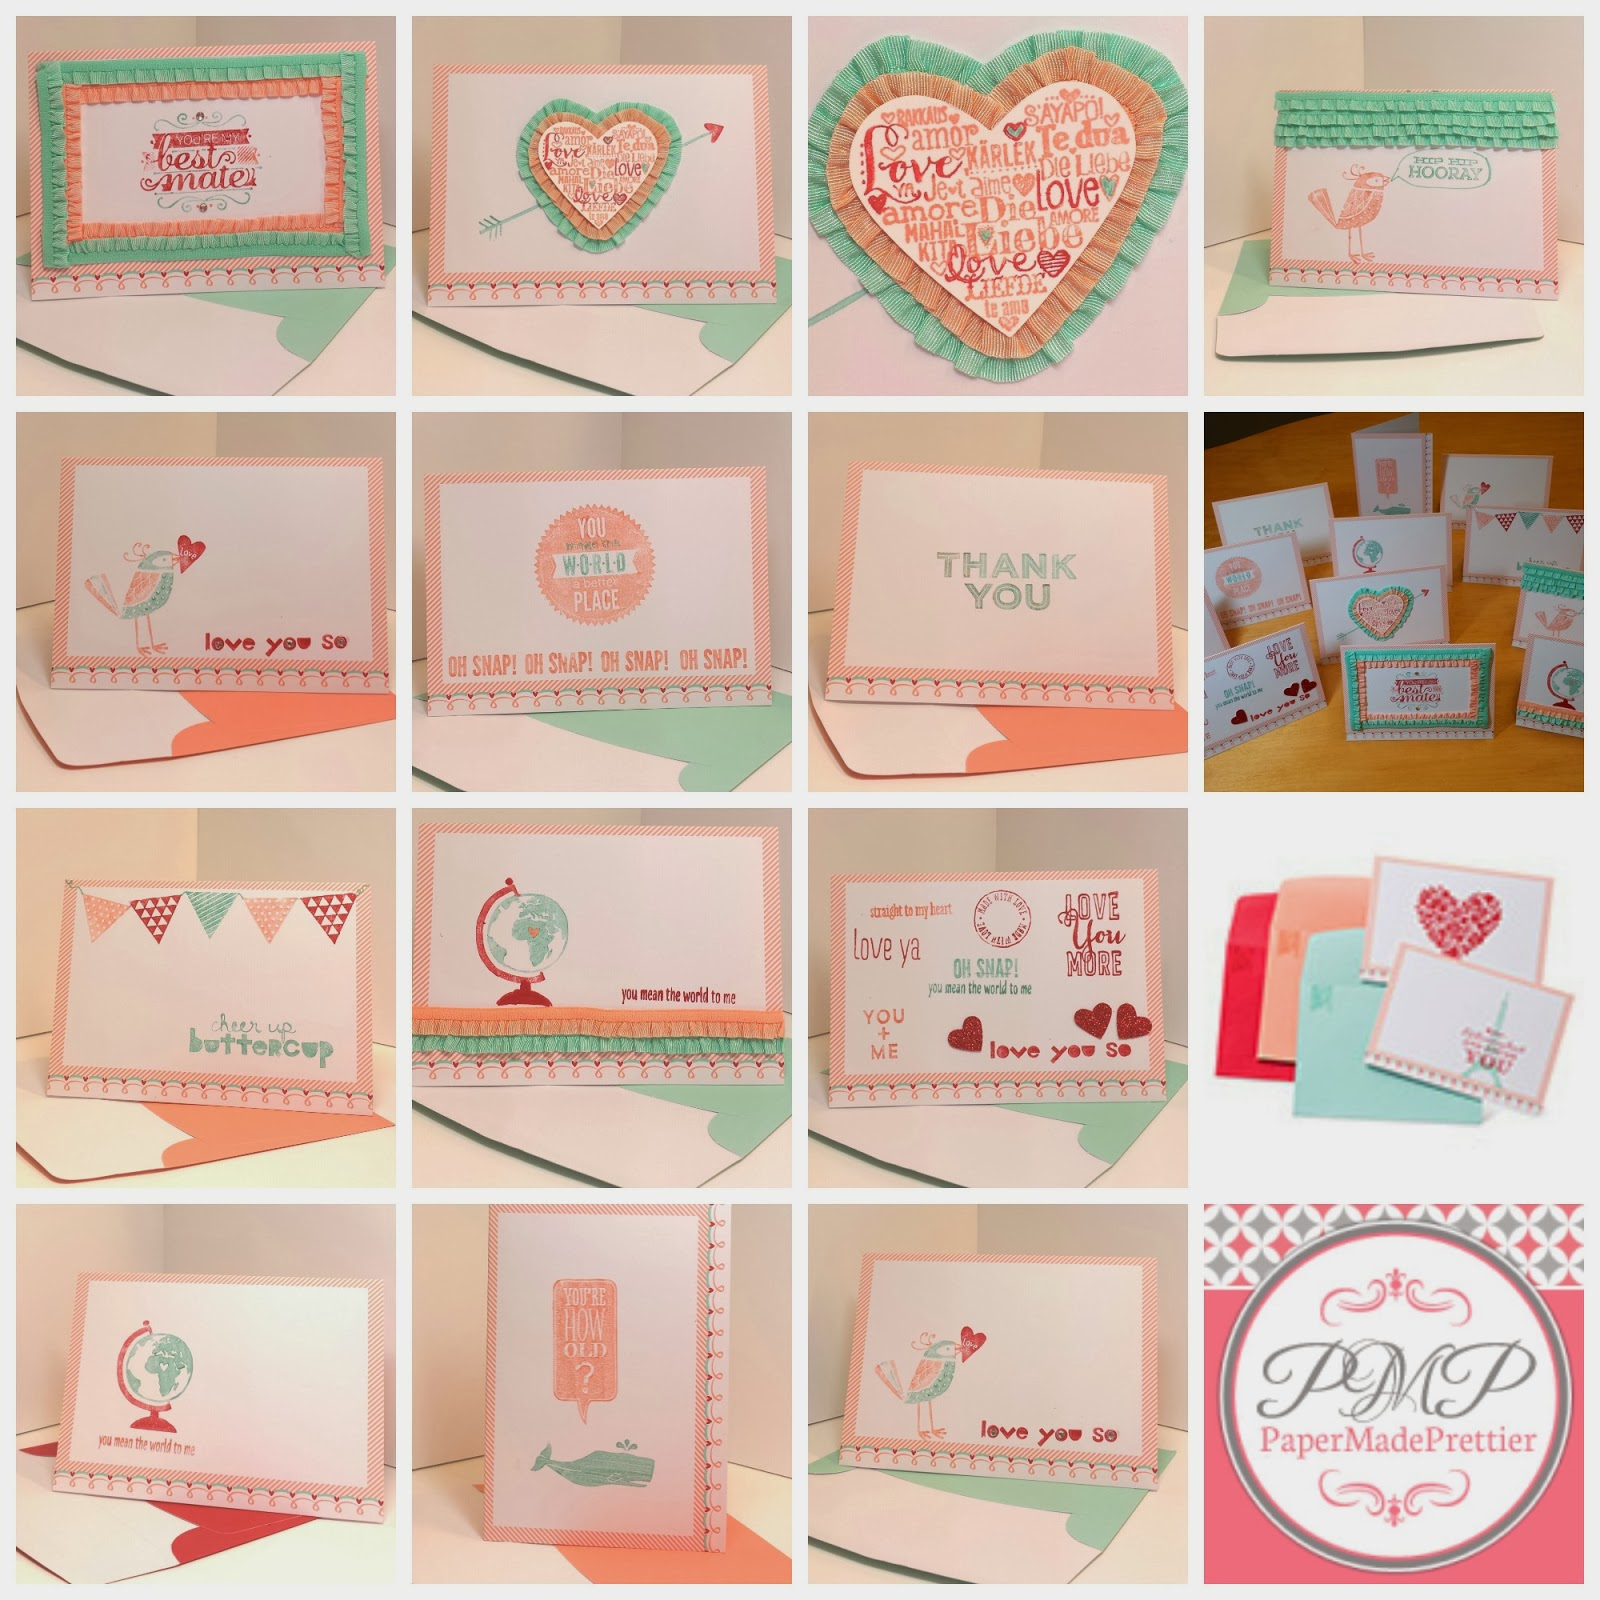 papermadeprettier Stampin Up Sweet Sayings notecards quick and – Valentine Note Cards